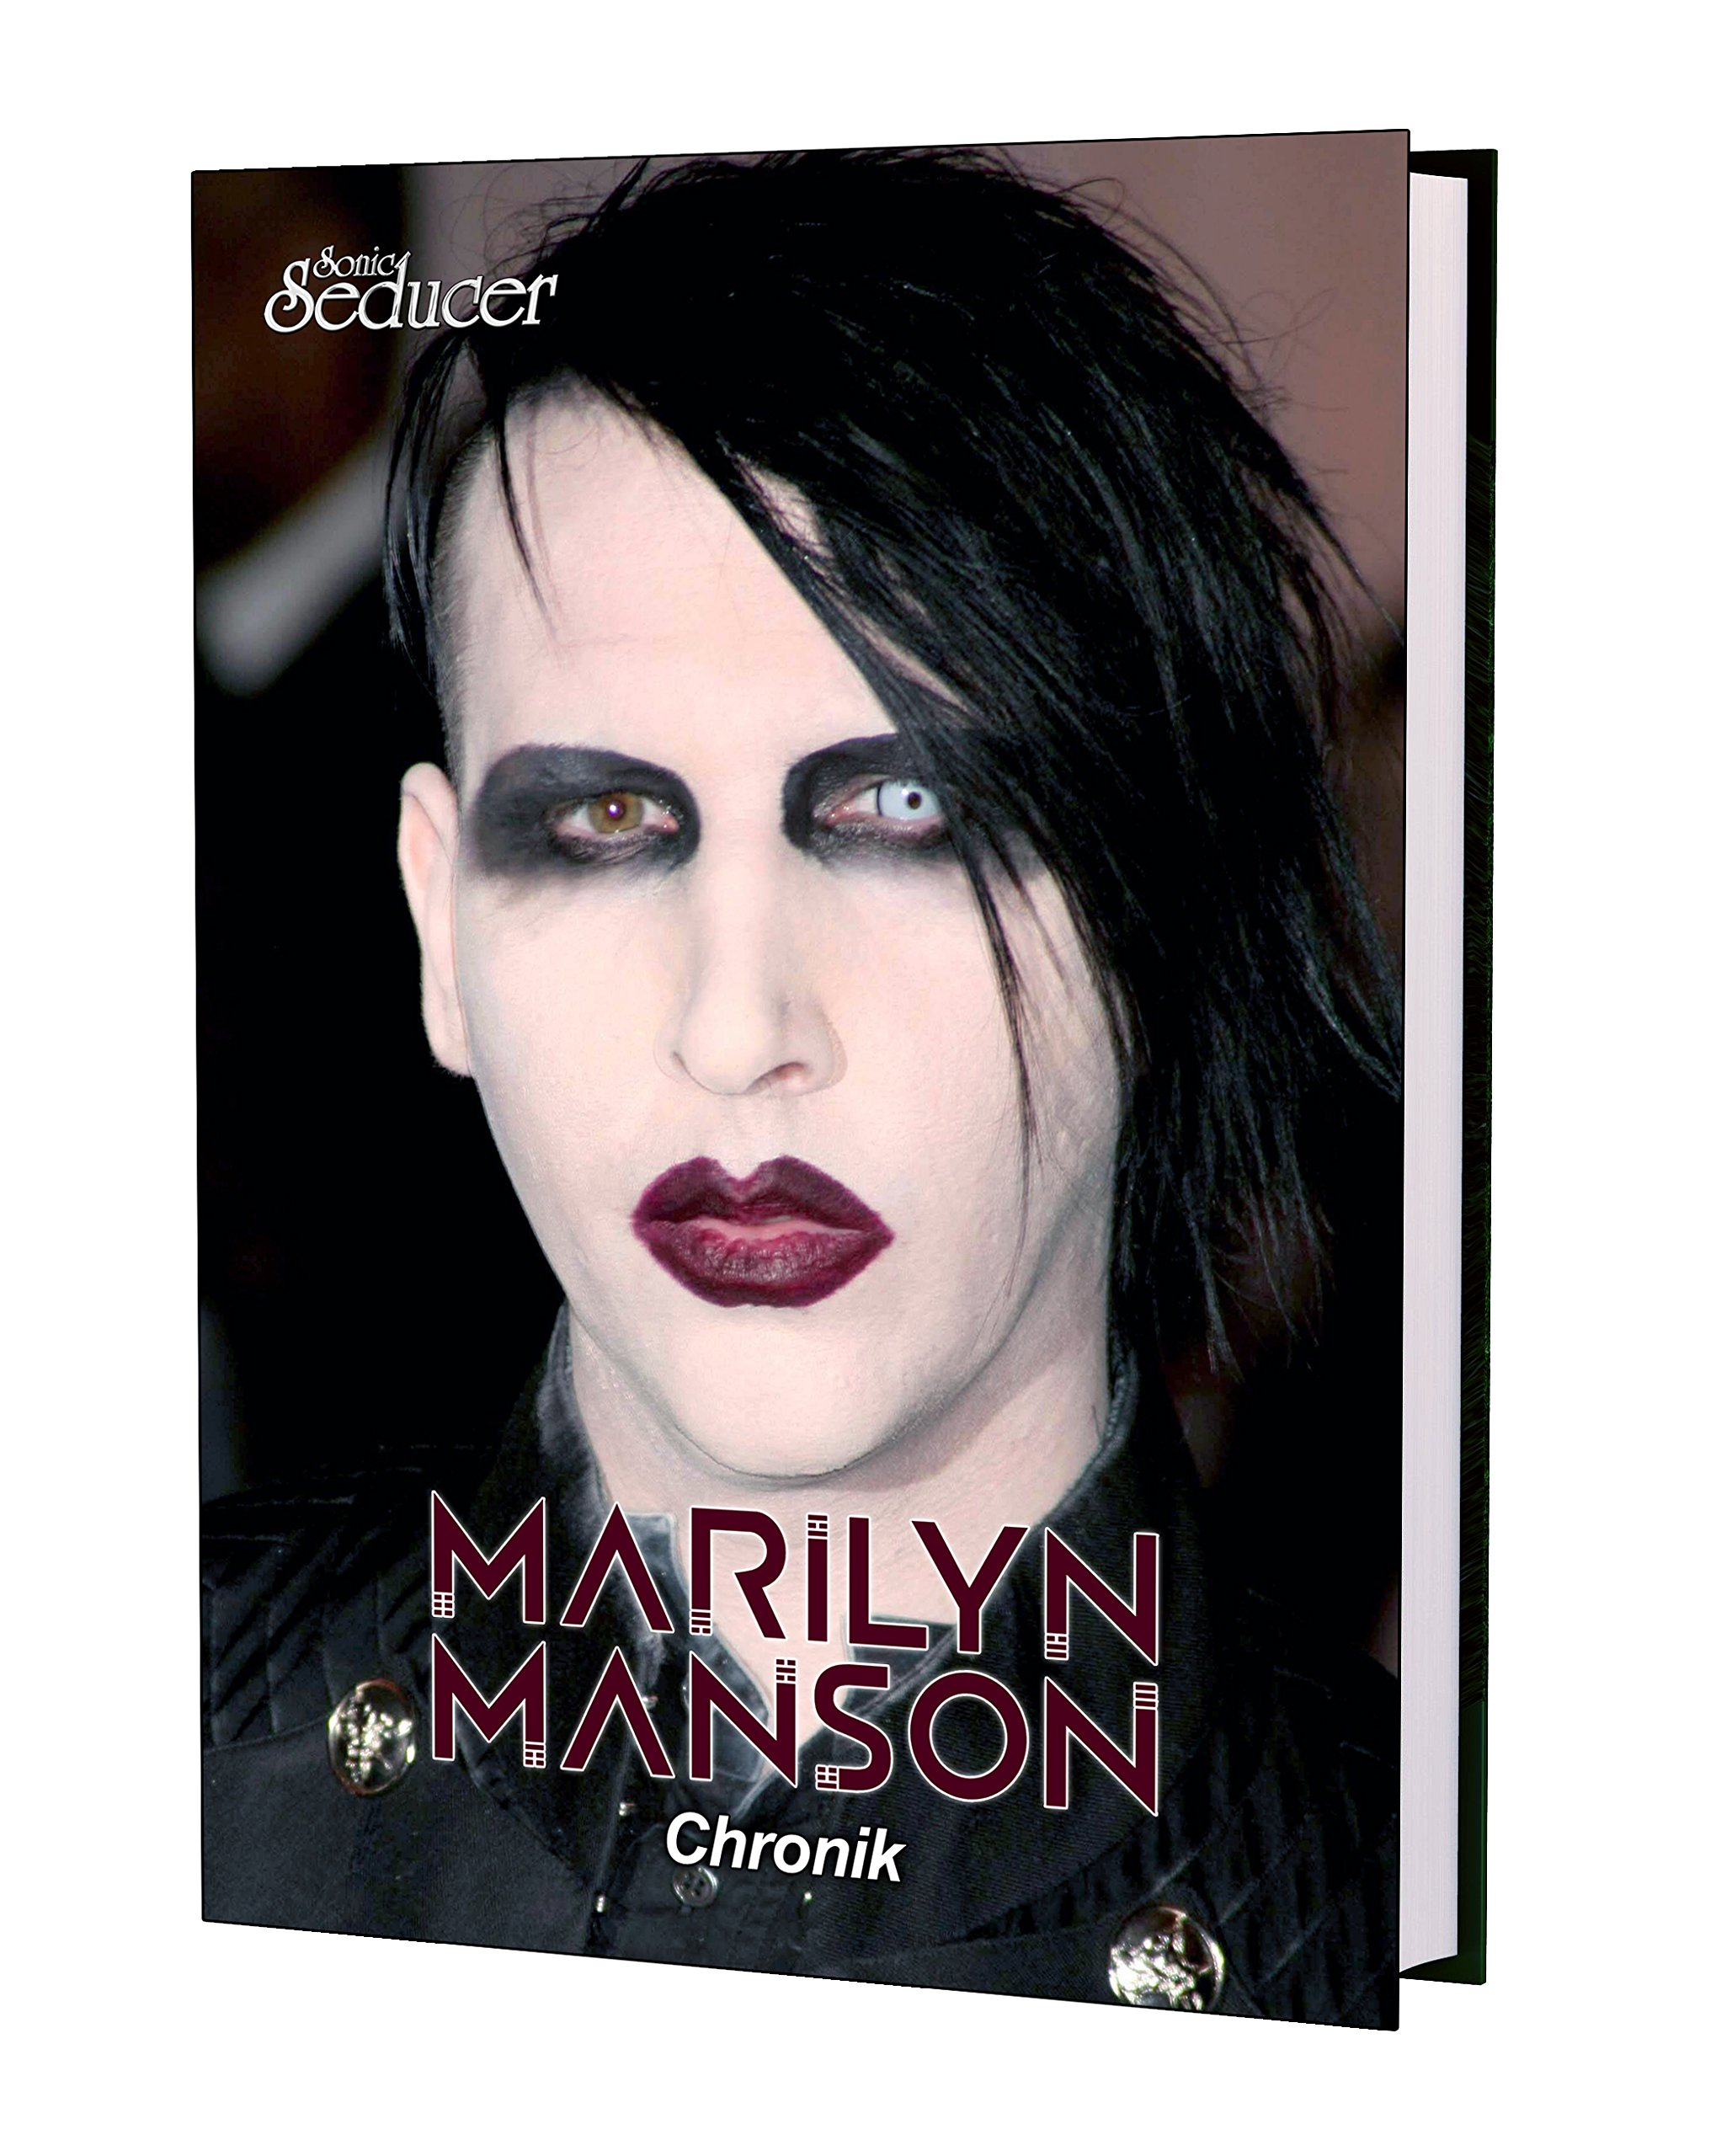 marilyn manson chronik